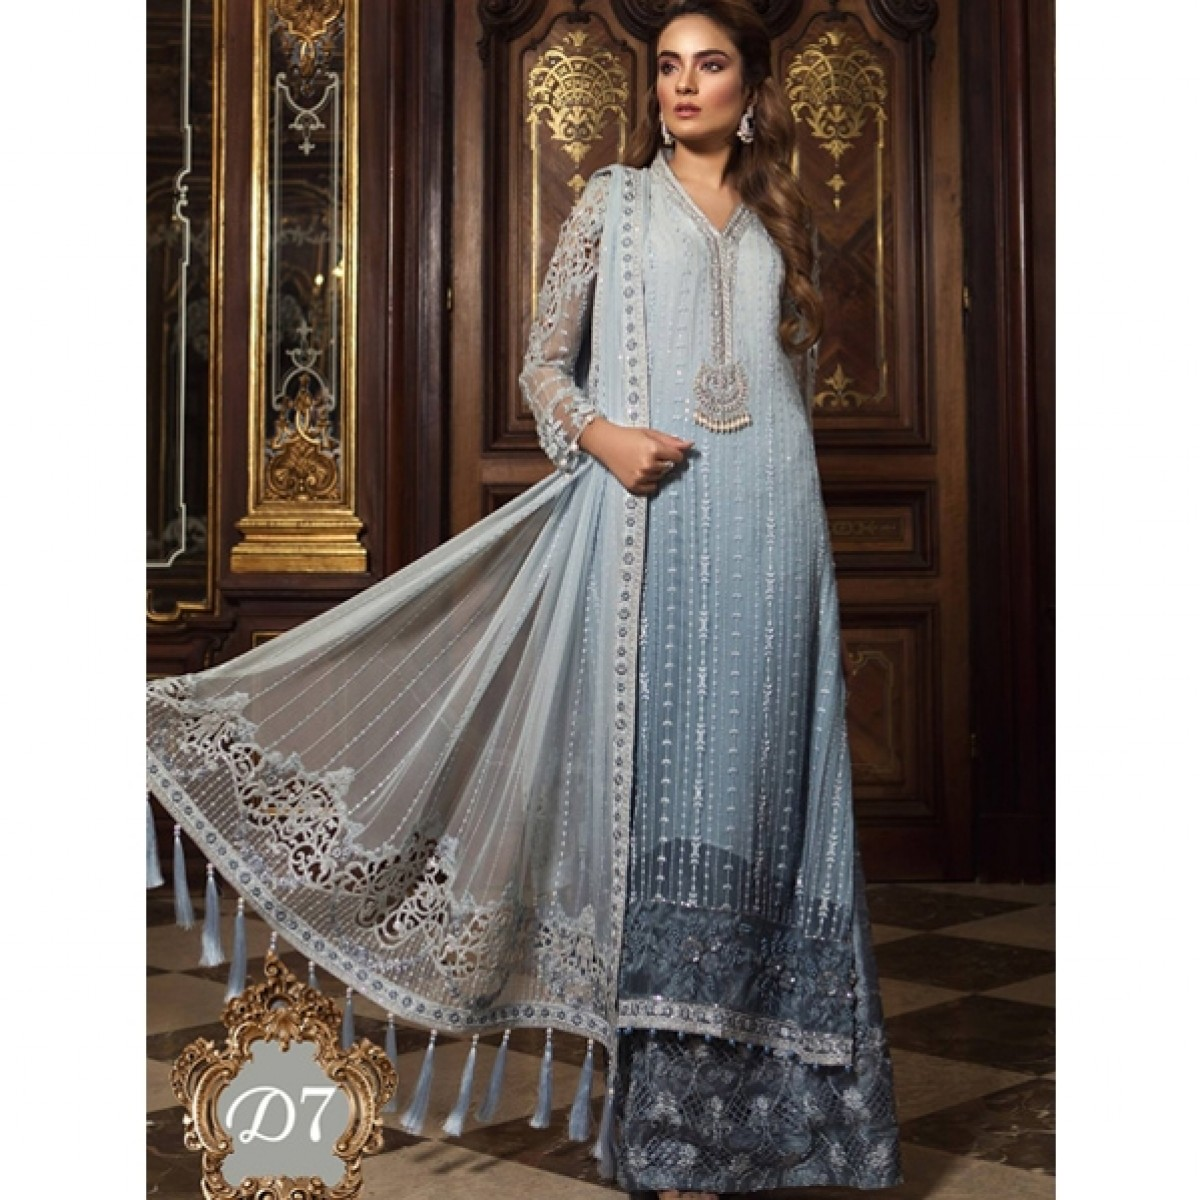 420fbbb350 B. Mbroidered Wedding Edition 2019 (D7) Price in Pakistan | Buy Maria.B. Mbroidered  Wedding Edition 3 Piece | iShopping.pk